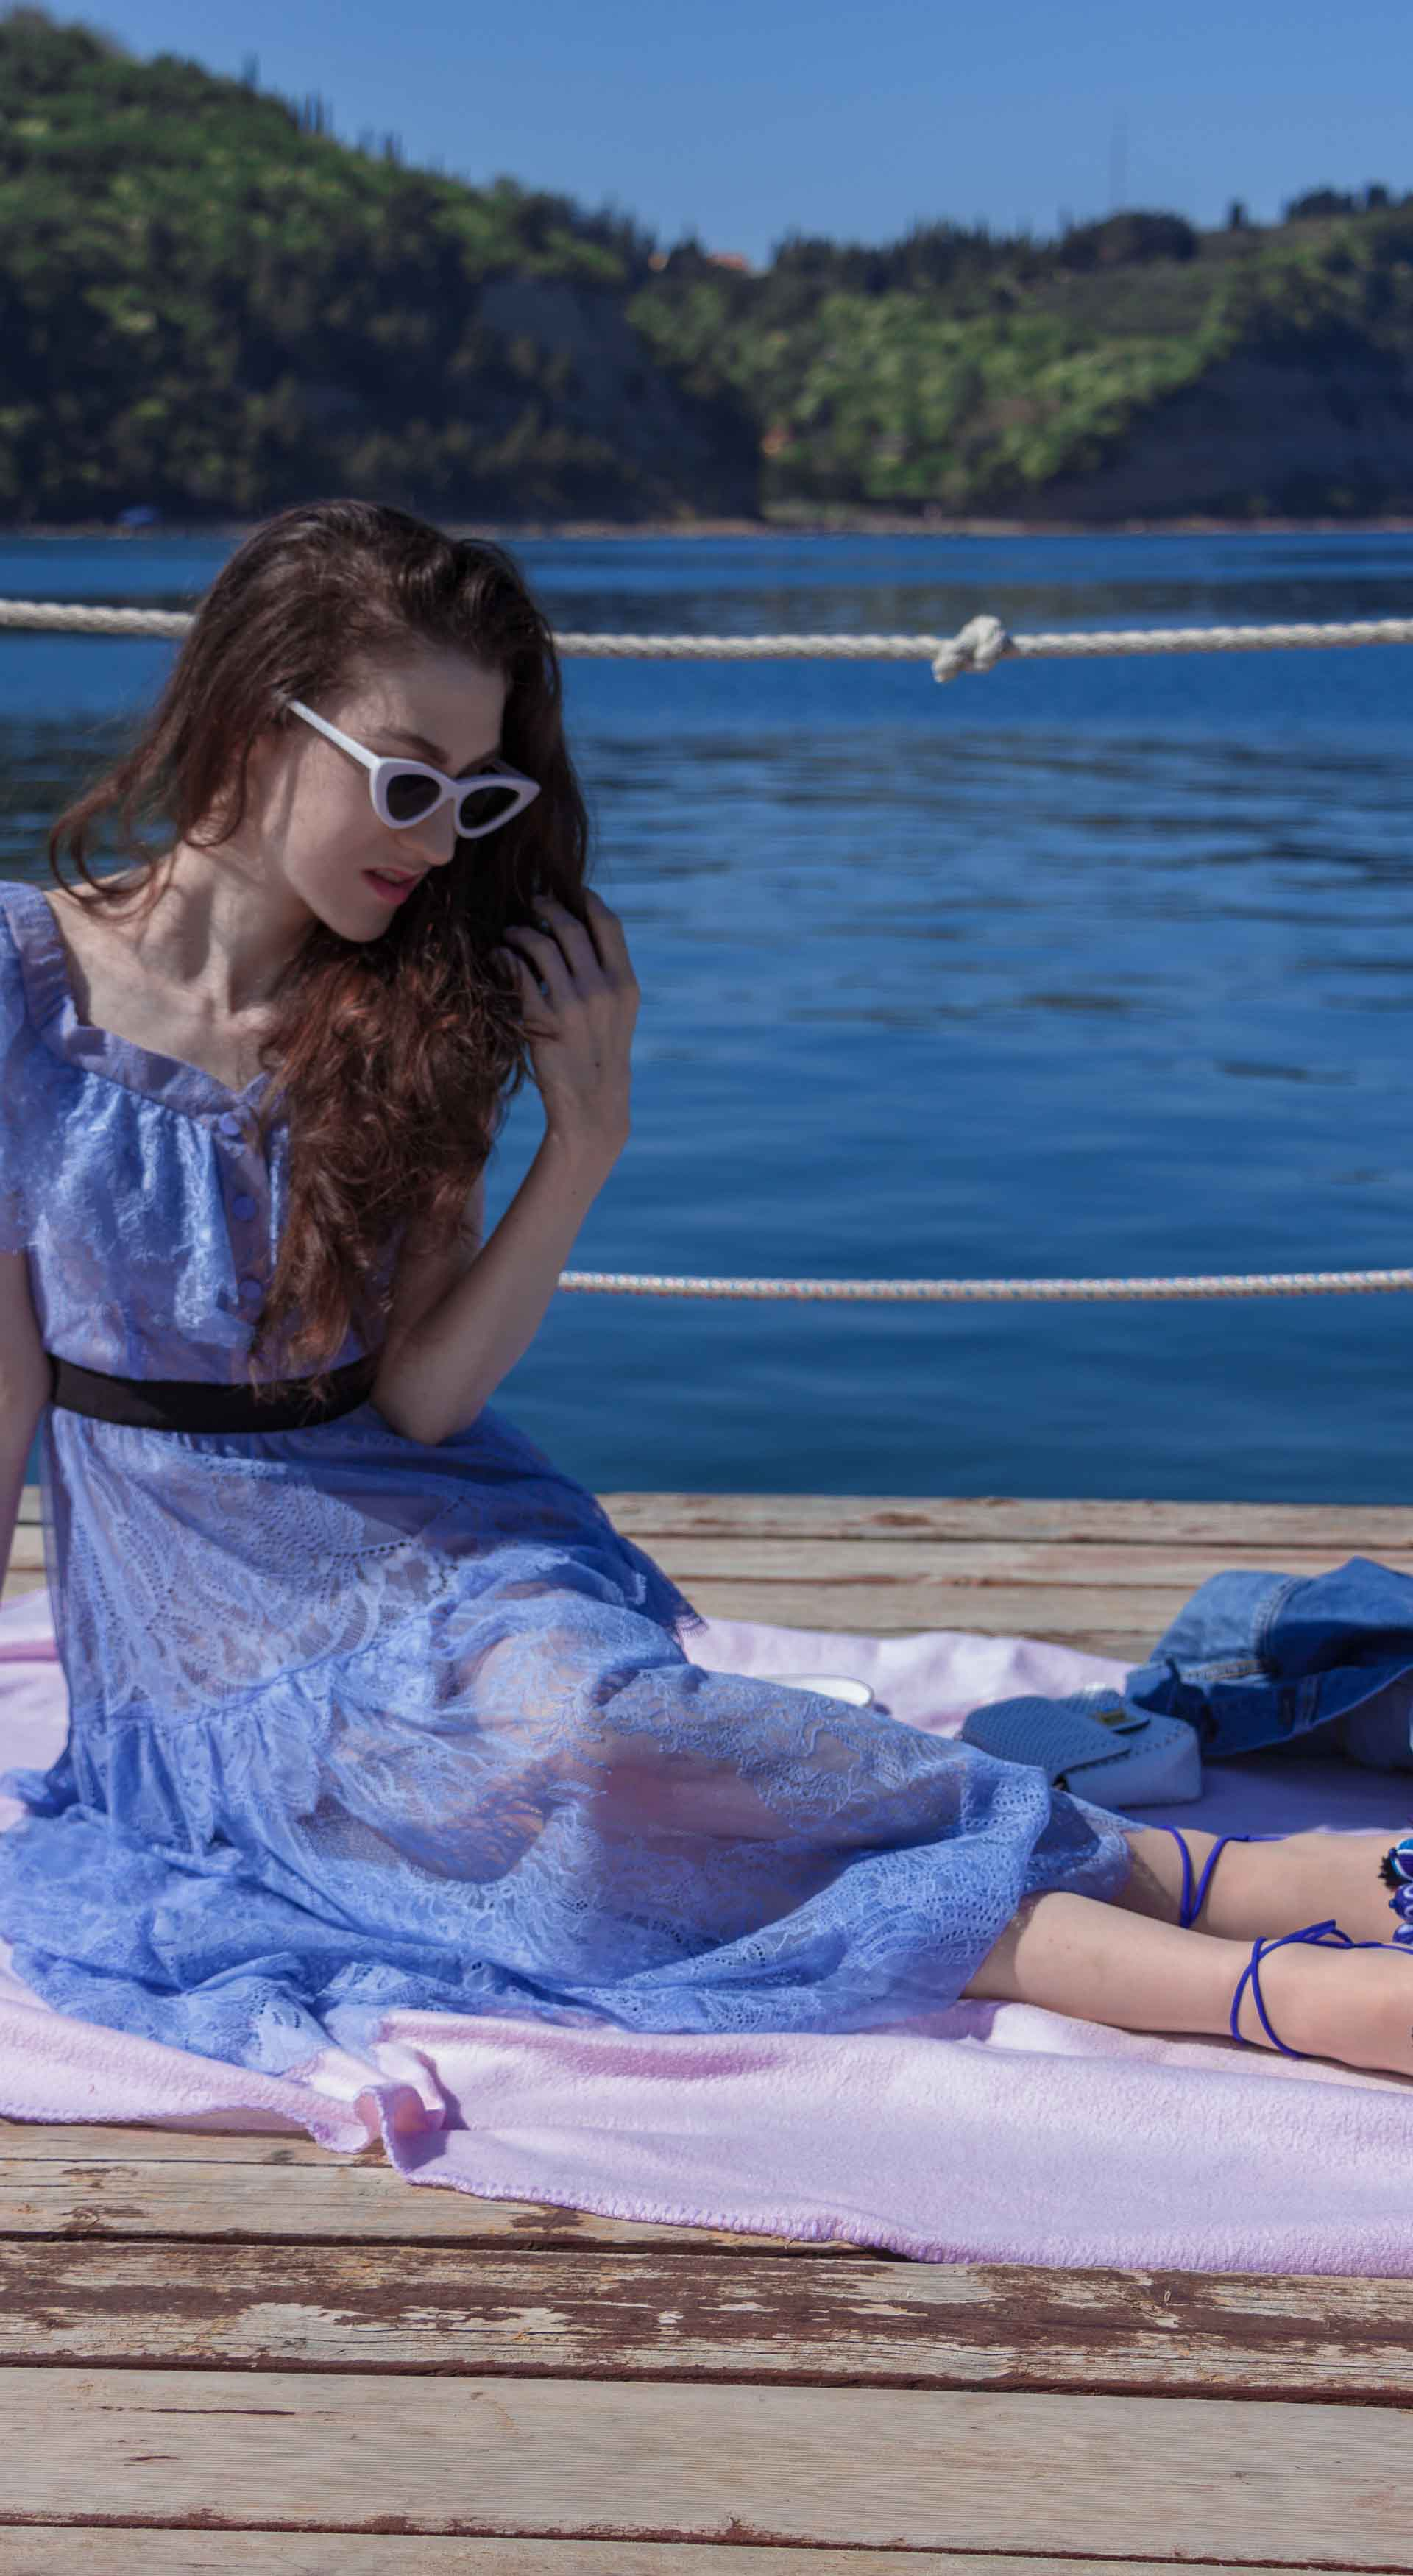 Veronika Lipar Fashion Blogger of Brunette from Wall Street wearing blue off the shoulder midi lace dress from Self-Portrait, white chain shoulder bag, Aquazzura blue pom pom tassels sandals, white Lolita cat-eye sunglasses while sitting on a picnic blanket by the lake